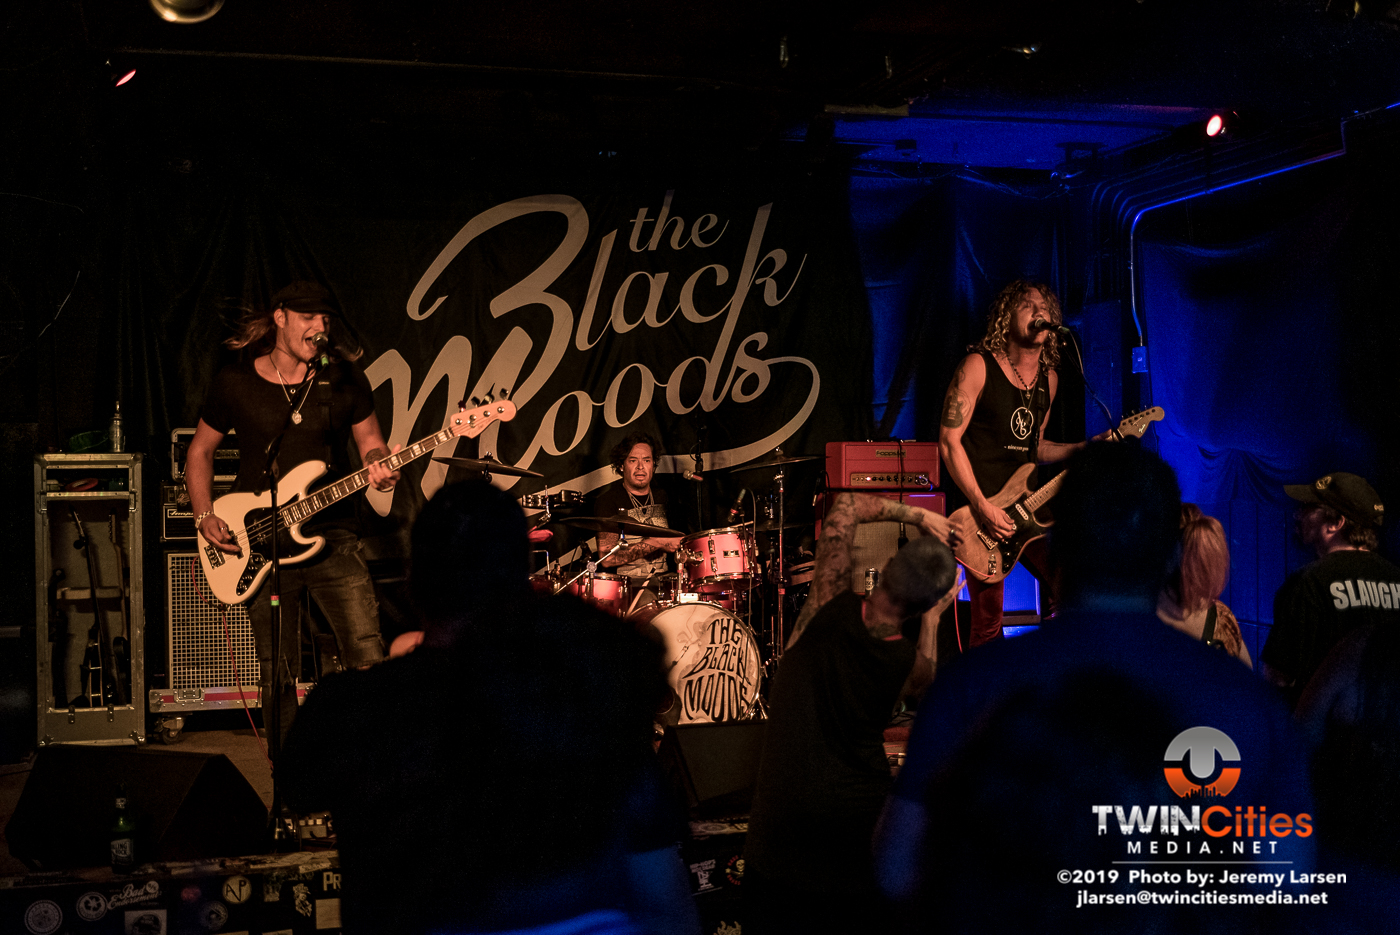 20190718-The-Black-Moods-The-Whats-Up-Lounge-14